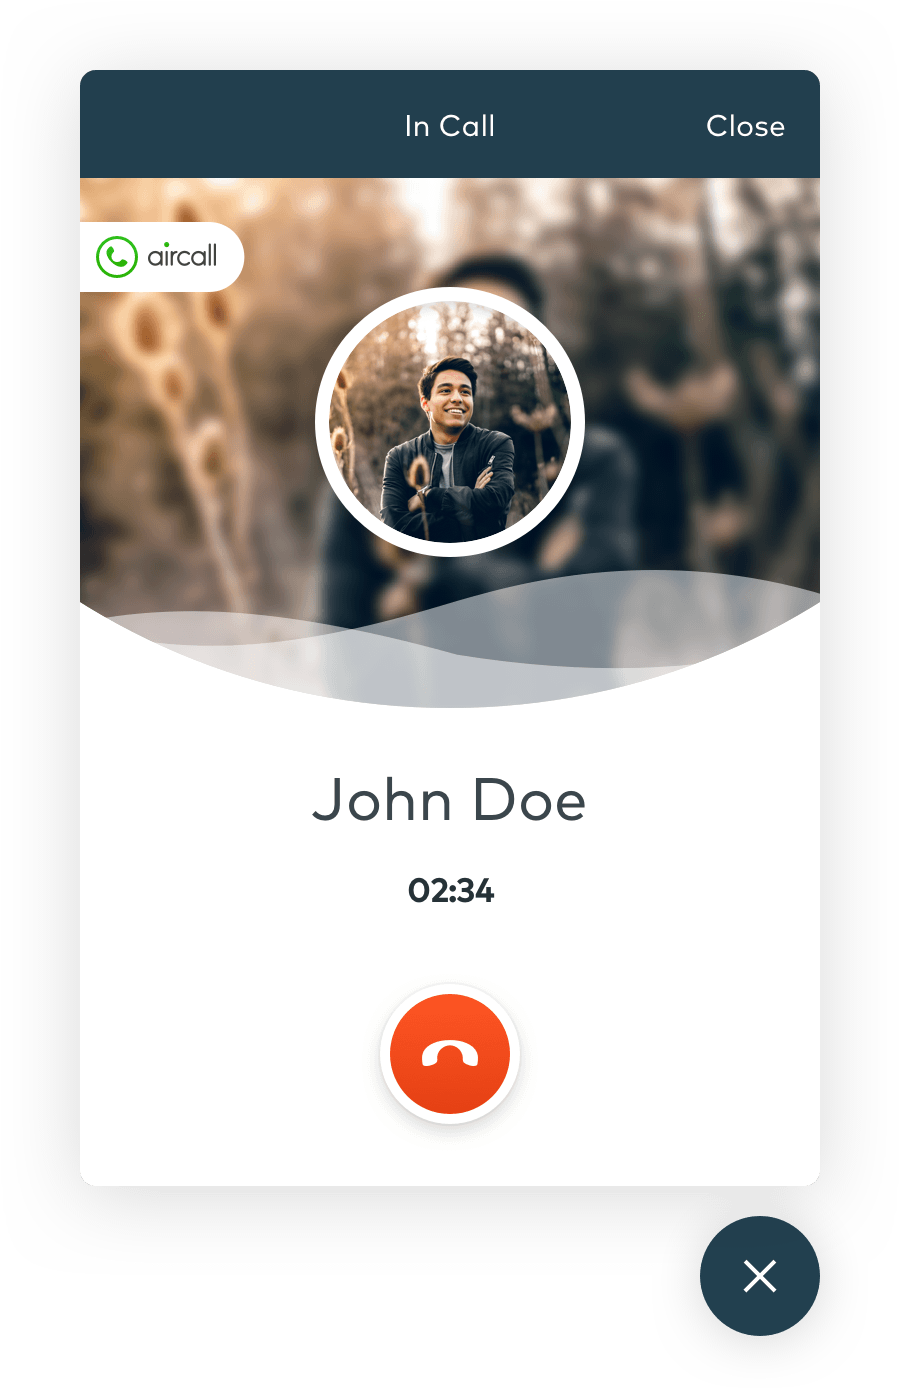 Aircall now on call